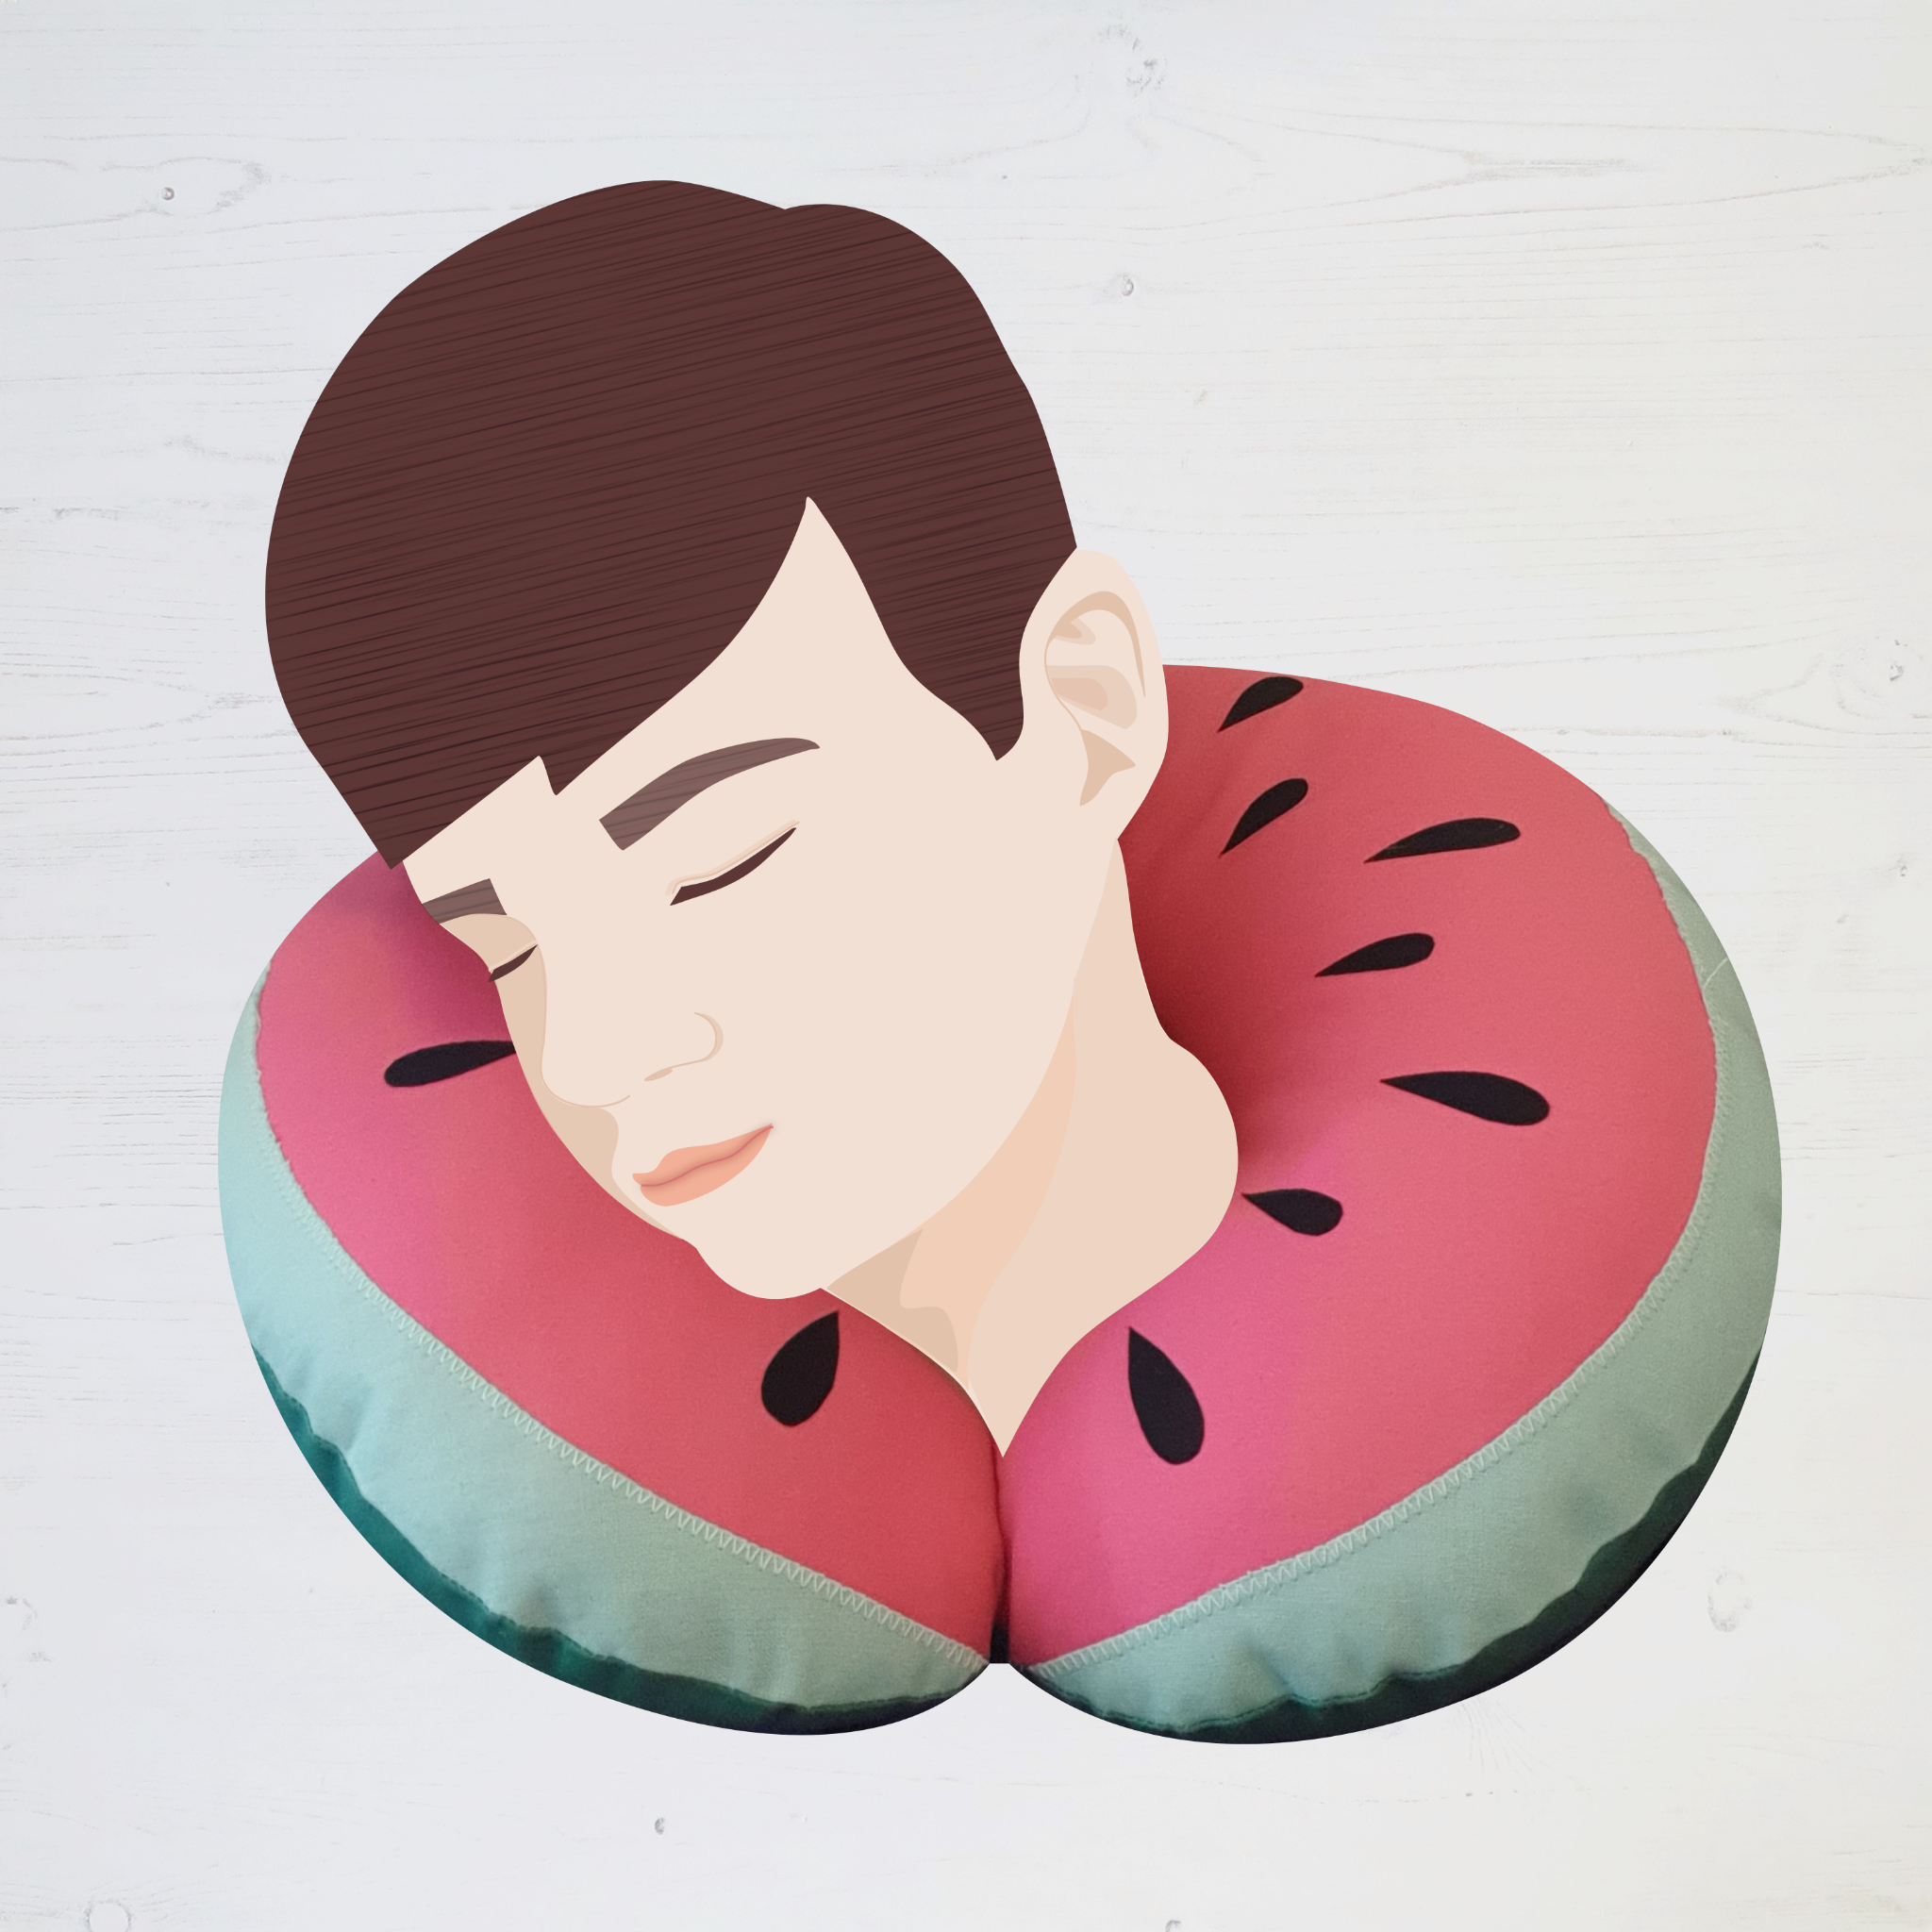 Watermelon Neck Pillow sewing kit by Stitch Club